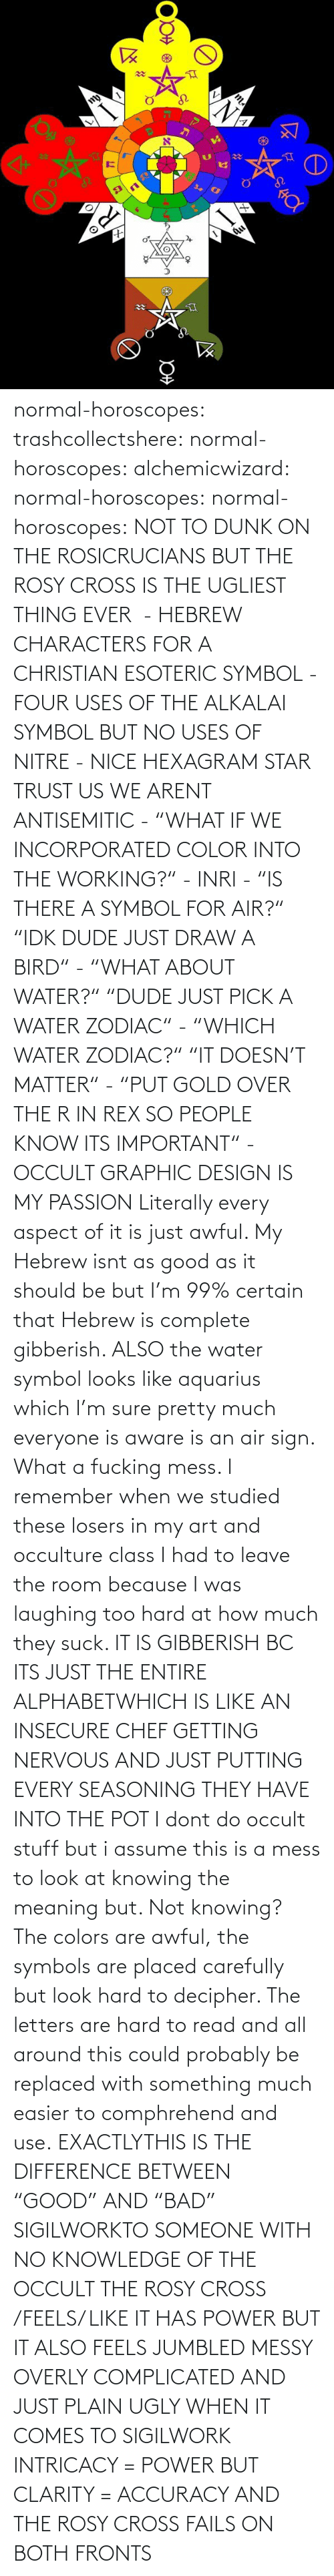 "gold: normal-horoscopes:  trashcollectshere: normal-horoscopes:   alchemicwizard:  normal-horoscopes:  normal-horoscopes: NOT TO DUNK ON THE ROSICRUCIANS BUT THE ROSY CROSS IS THE UGLIEST THING EVER  - HEBREW CHARACTERS FOR A CHRISTIAN ESOTERIC SYMBOL - FOUR USES OF THE ALKALAI SYMBOL BUT NO USES OF NITRE - NICE HEXAGRAM STAR TRUST US WE ARENT ANTISEMITIC - ""WHAT IF WE INCORPORATED COLOR INTO THE WORKING?"" - INRI - ""IS THERE A SYMBOL FOR AIR?"" ""IDK DUDE JUST DRAW A BIRD"" - ""WHAT ABOUT WATER?"" ""DUDE JUST PICK A WATER ZODIAC"" - ""WHICH WATER ZODIAC?"" ""IT DOESN'T MATTER"" - ""PUT GOLD OVER THE R IN REX SO PEOPLE KNOW ITS IMPORTANT"" - OCCULT GRAPHIC DESIGN IS MY PASSION  Literally every aspect of it is just awful. My Hebrew isnt as good as it should be but I'm 99% certain that Hebrew is complete gibberish.  ALSO the water symbol looks like aquarius which I'm sure pretty much everyone is aware is an air sign. What a fucking mess.  I remember when we studied these losers in my art and occulture class I had to leave the room because I was laughing too hard at how much they suck.   IT IS GIBBERISH BC ITS JUST THE ENTIRE ALPHABETWHICH IS LIKE AN INSECURE CHEF GETTING NERVOUS AND JUST PUTTING EVERY SEASONING THEY HAVE INTO THE POT     I dont do occult stuff but i assume this is a mess to look at knowing the meaning but. Not knowing? The colors are awful, the symbols are placed carefully but look hard to decipher. The letters are hard to read and all around this could probably be replaced with something much easier to comphrehend and use.  EXACTLYTHIS IS THE DIFFERENCE BETWEEN ""GOOD"" AND ""BAD"" SIGILWORKTO SOMEONE WITH NO KNOWLEDGE OF THE OCCULT THE ROSY CROSS /FEELS/ LIKE IT HAS POWER BUT IT ALSO FEELS JUMBLED MESSY OVERLY COMPLICATED AND JUST PLAIN UGLY WHEN IT COMES TO SIGILWORK INTRICACY = POWER BUT CLARITY = ACCURACY AND THE ROSY CROSS FAILS ON BOTH FRONTS"